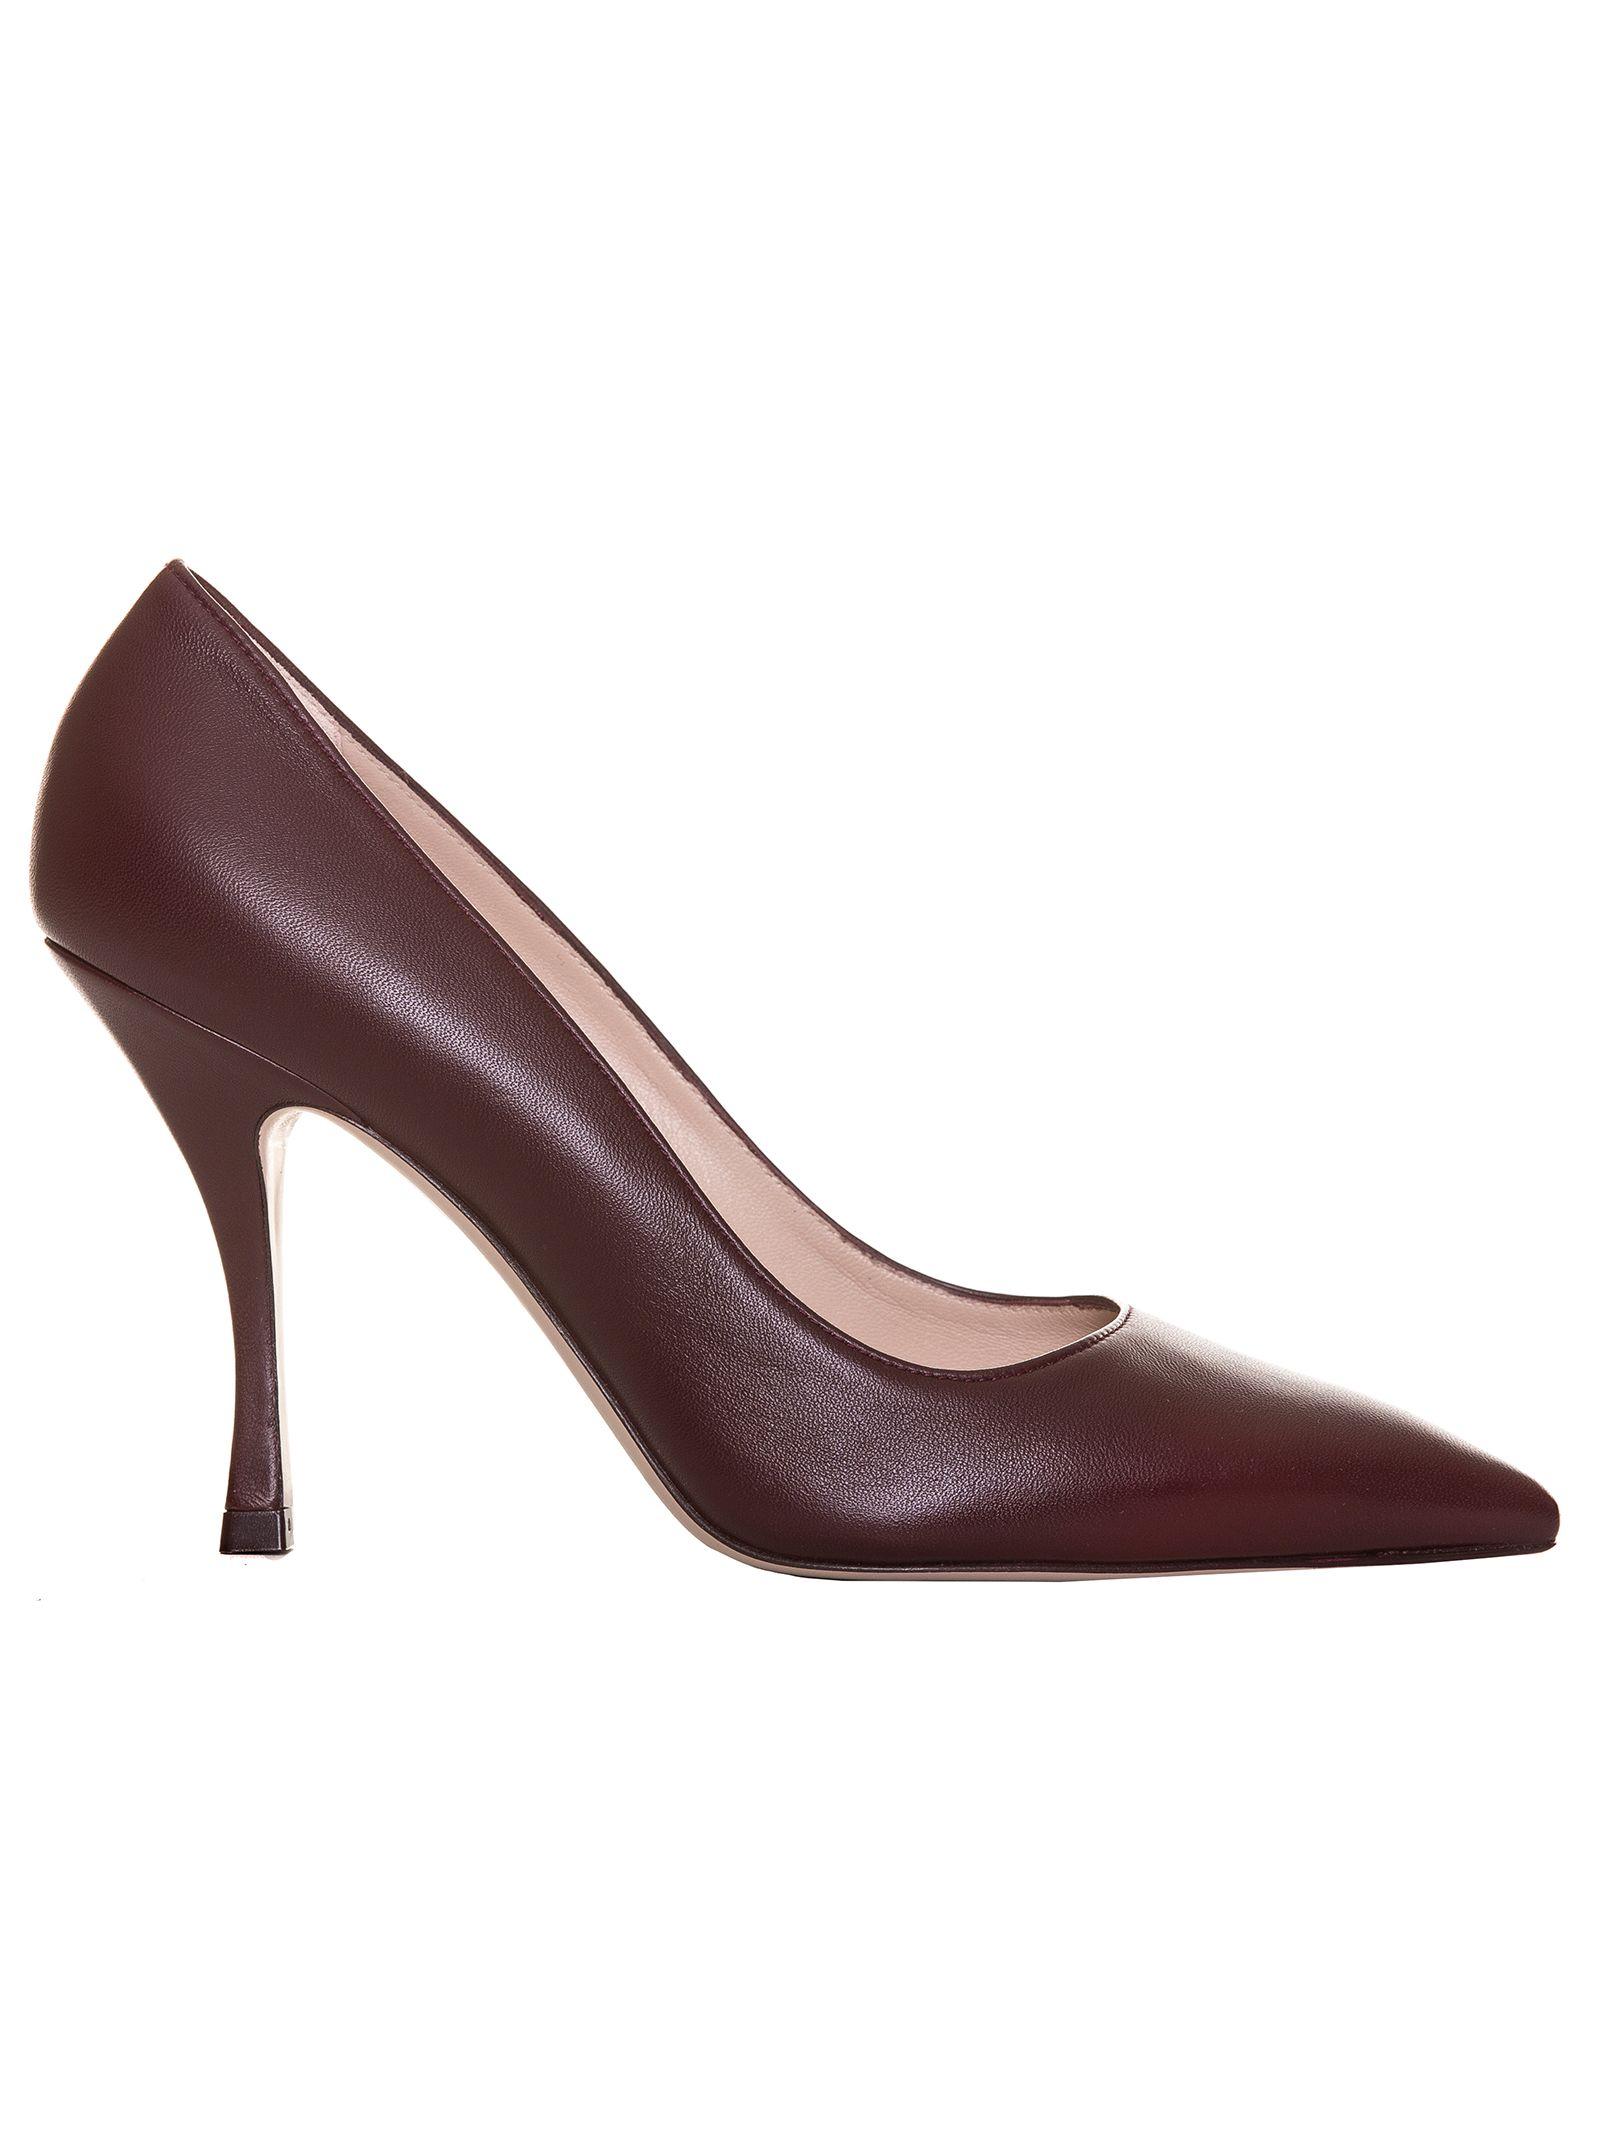 Stuart Weitzman Tippi Pointed Toe Pumps